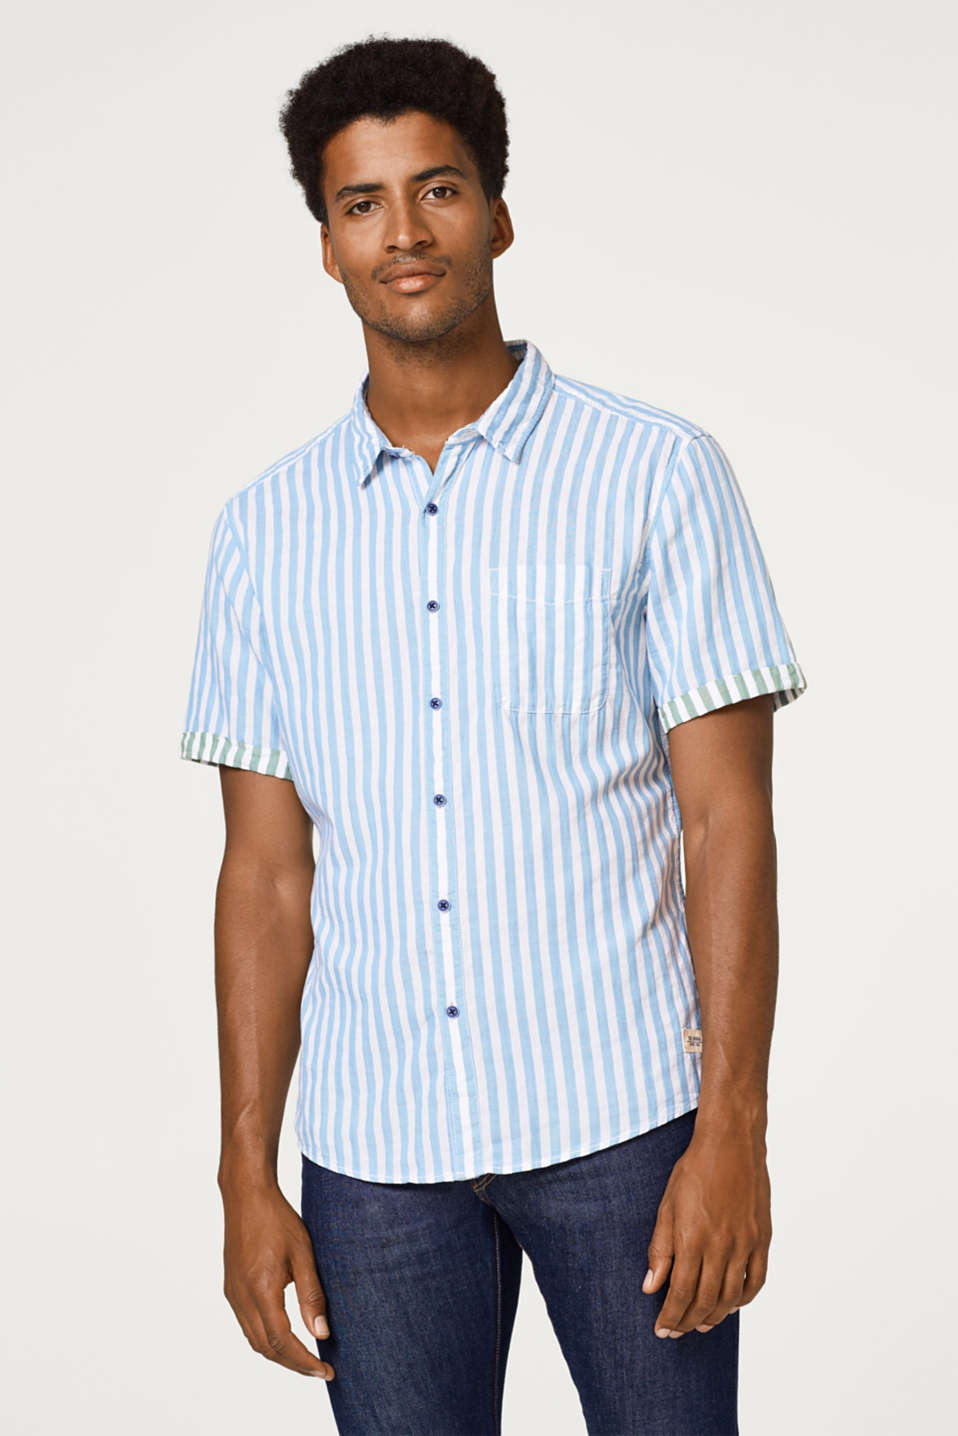 edc - Short sleeve shirt with stripes, 100% cotton